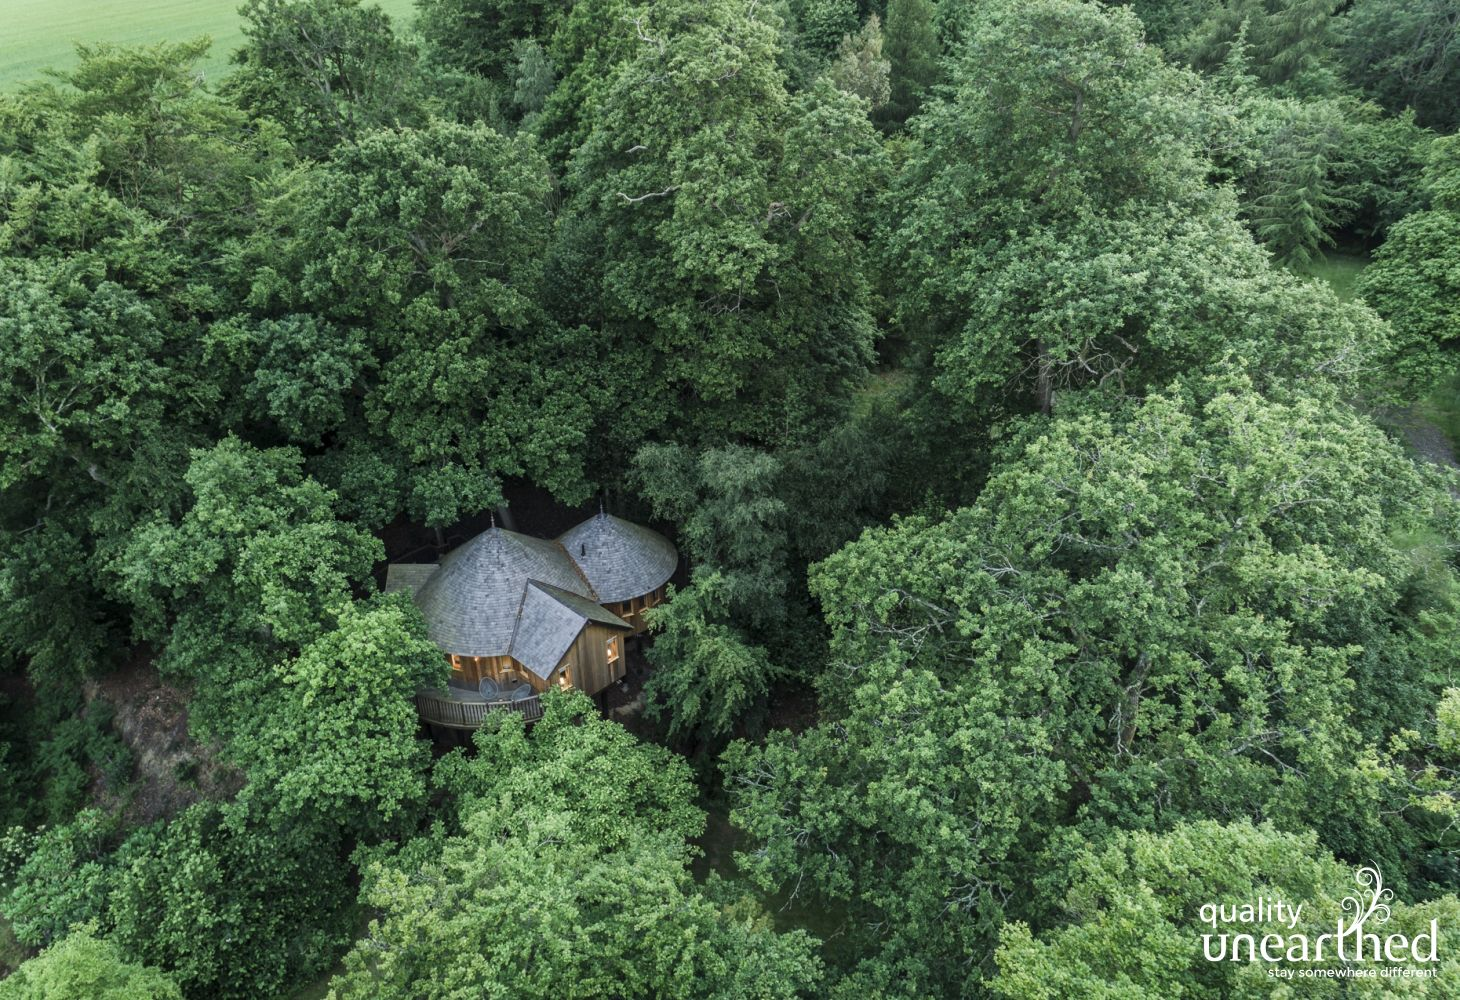 The 5 star family treehouse is truly snuggled into the Sussex woodland